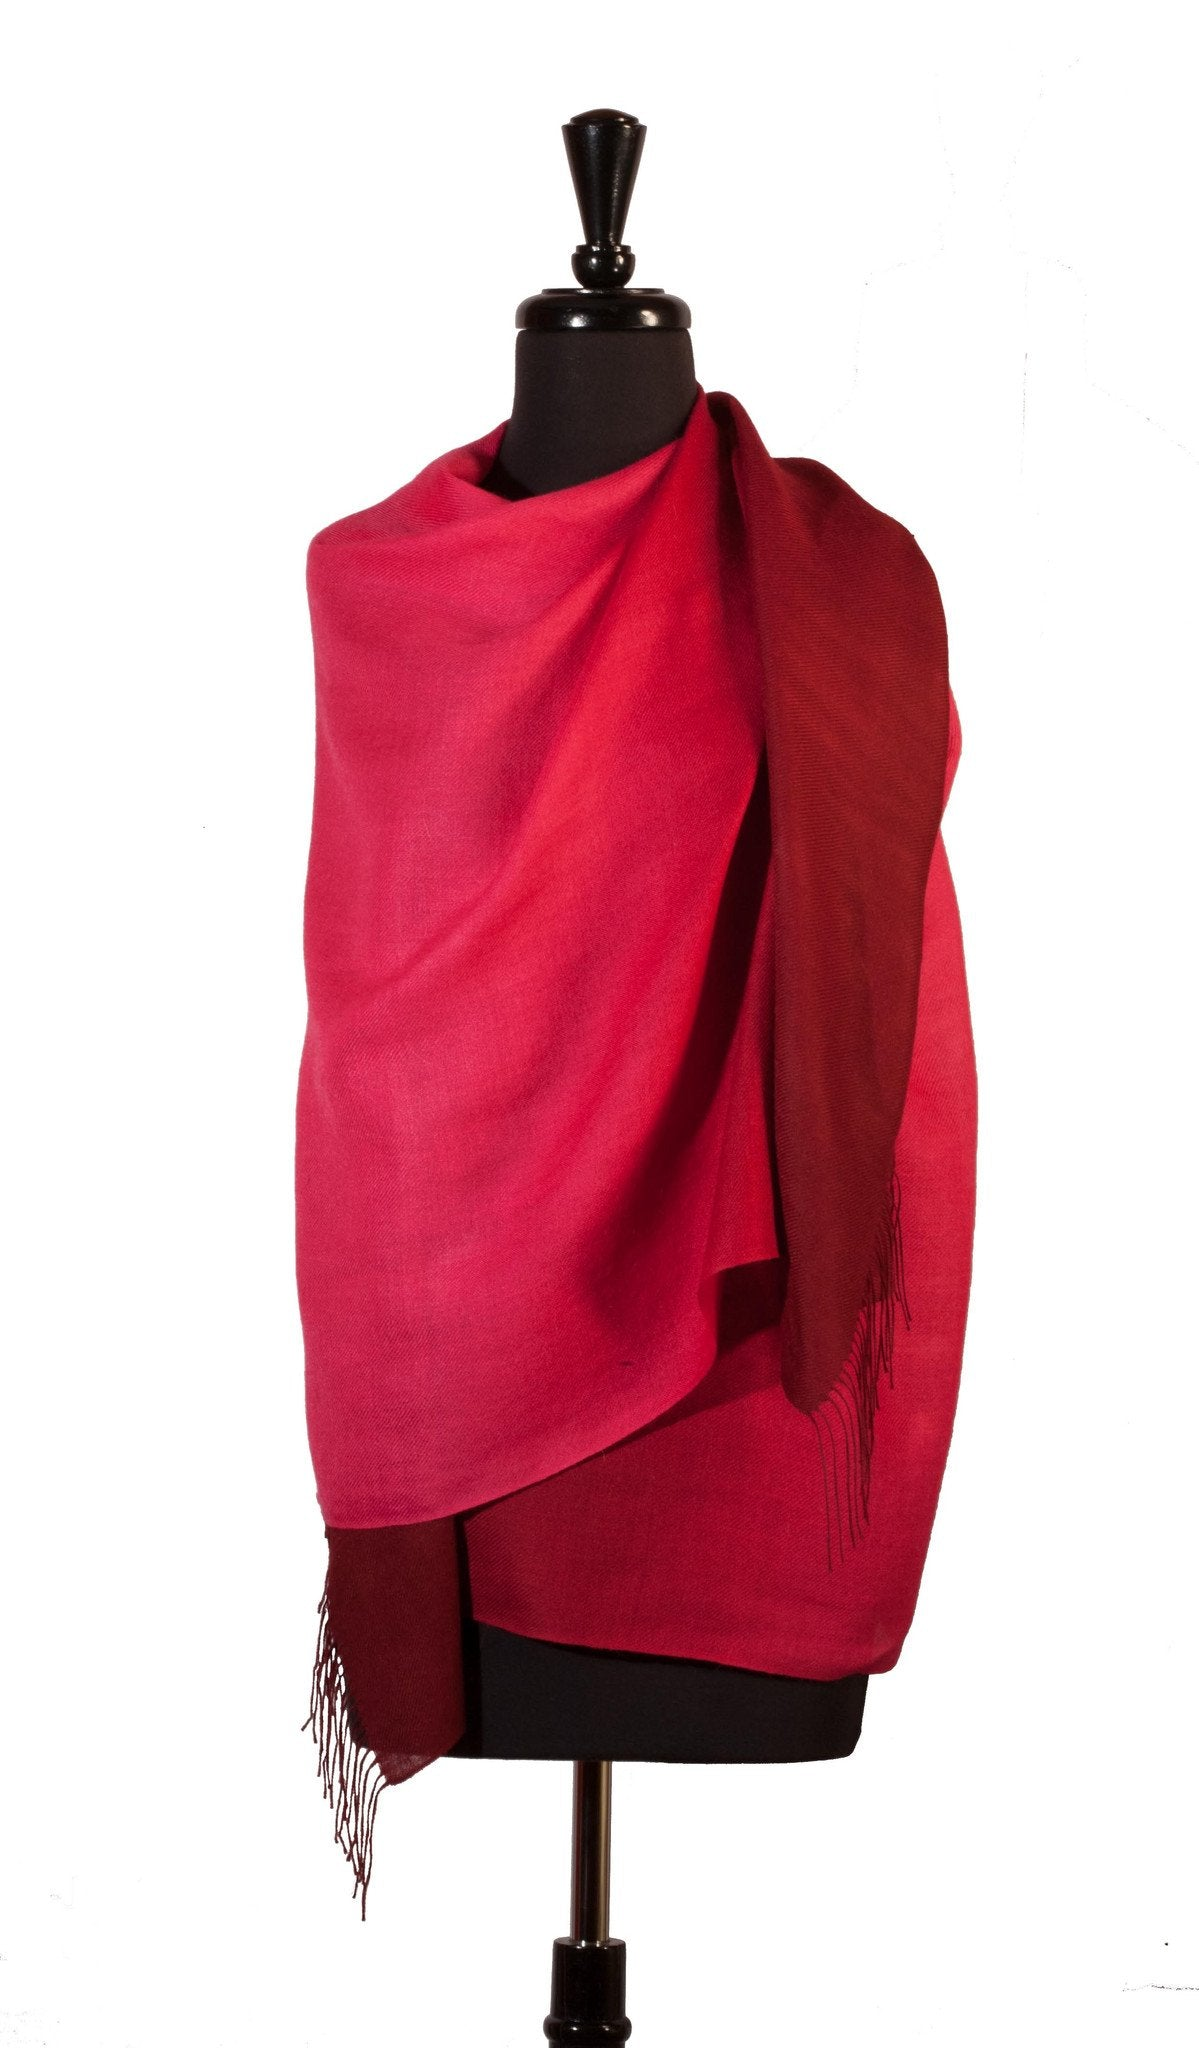 Shawl Baby Alpaca & Silk in Two-Tone Degrade - Deep Pink - Qinti - The Peruvian Shop